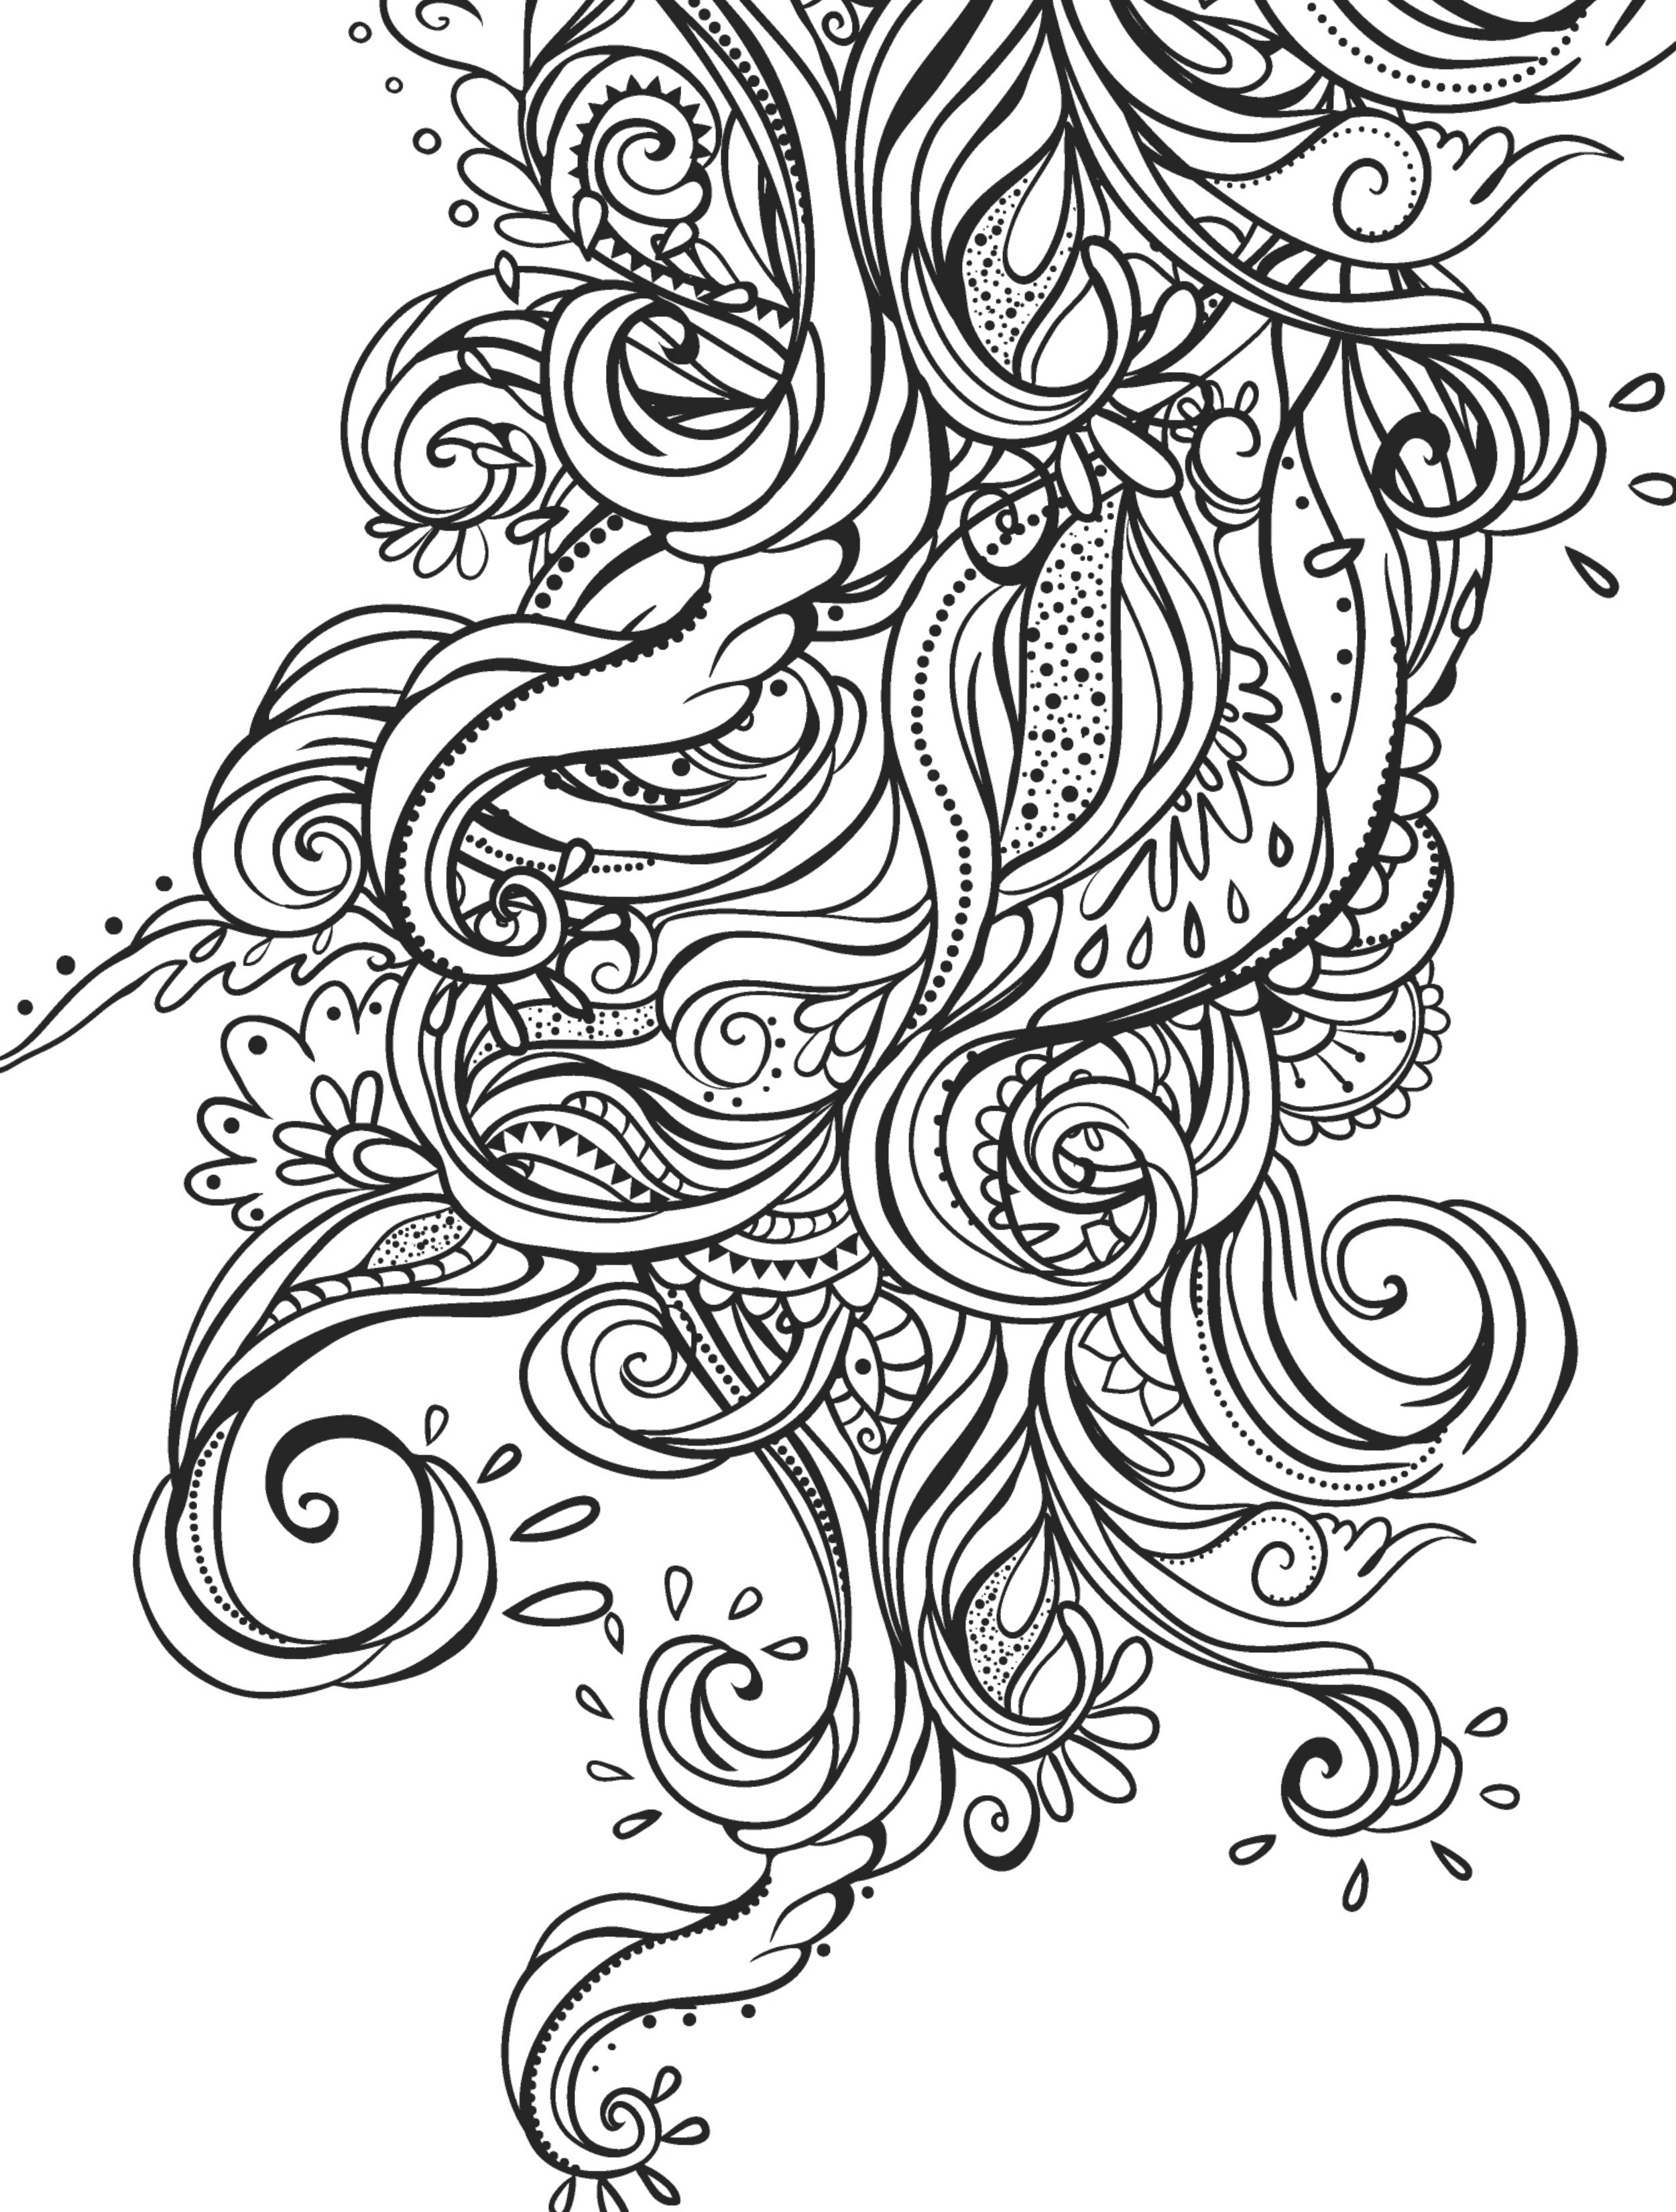 2500x3300 Crazy Busy Coloring Pages For Adults Page Of Crazy